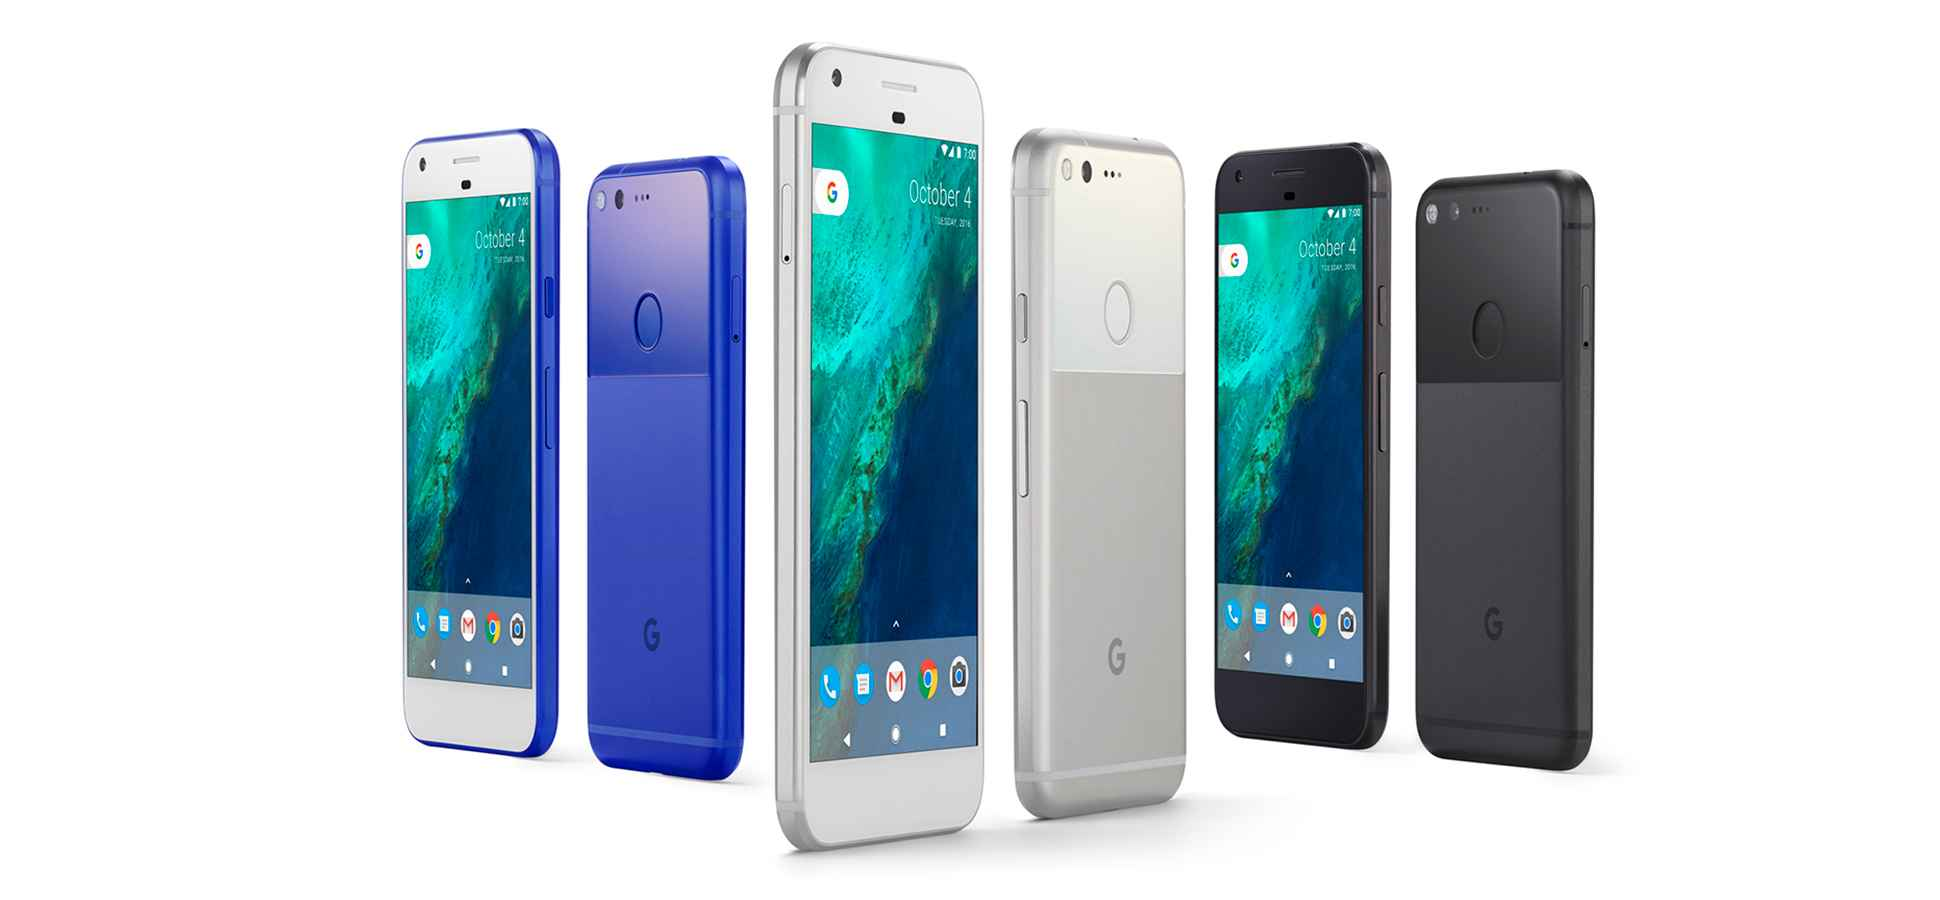 6 Ways the Google Pixel Will Make You Want to Ditch Your iPhone